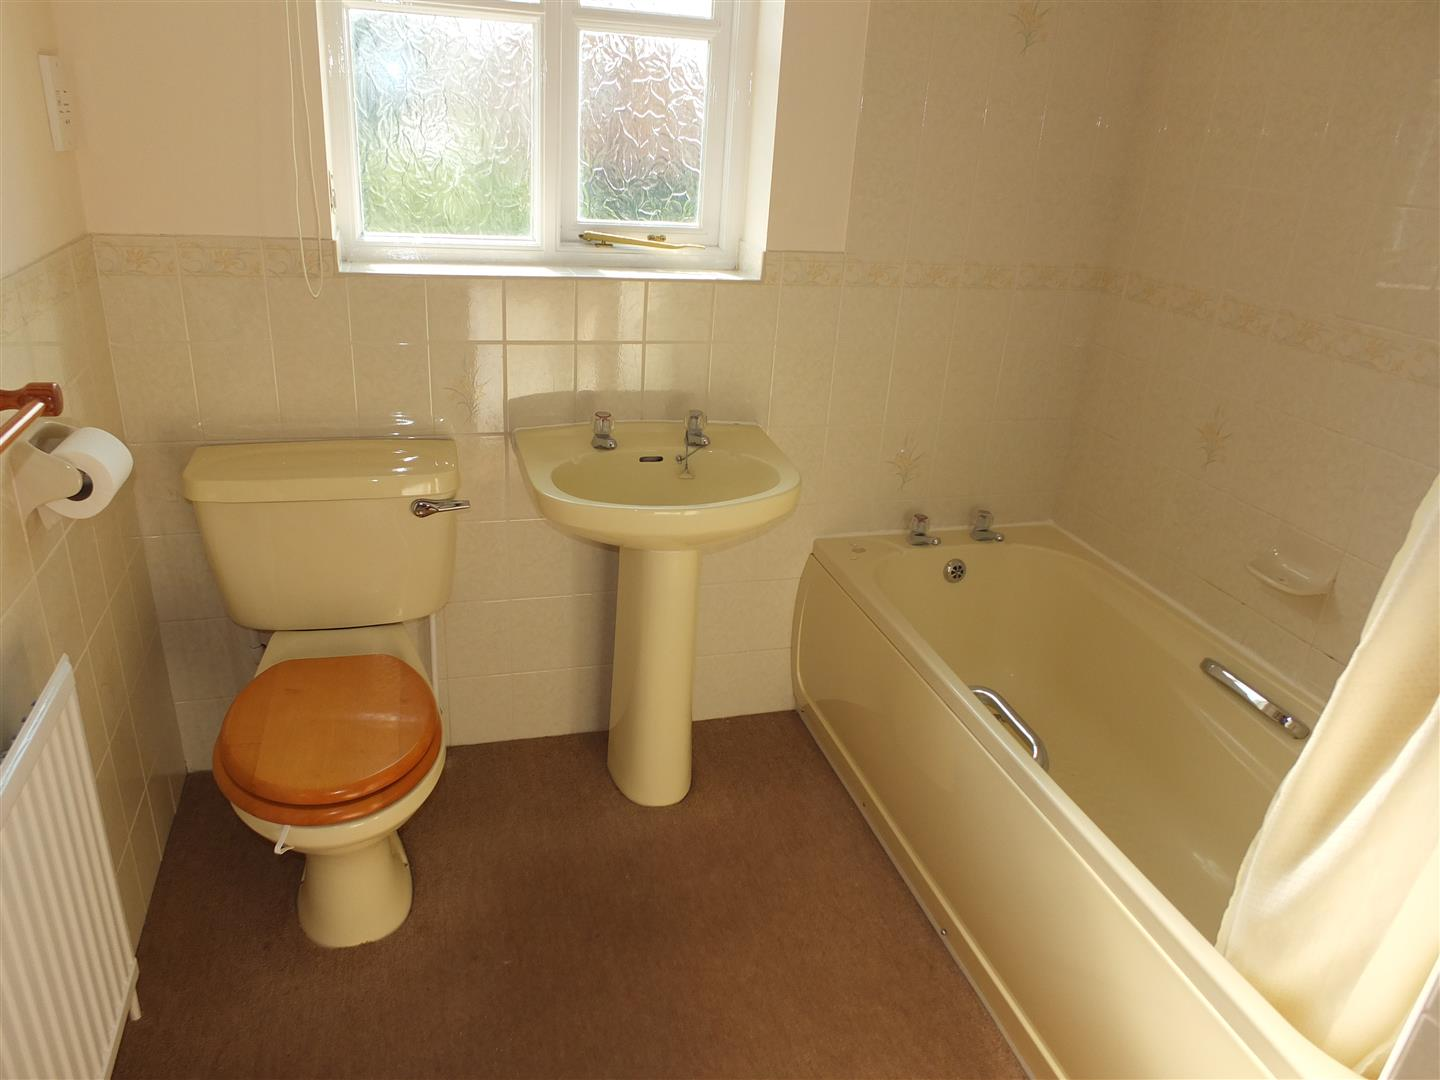 1 bed house to rent in Long Sutton Spalding, PE12 9RR 3